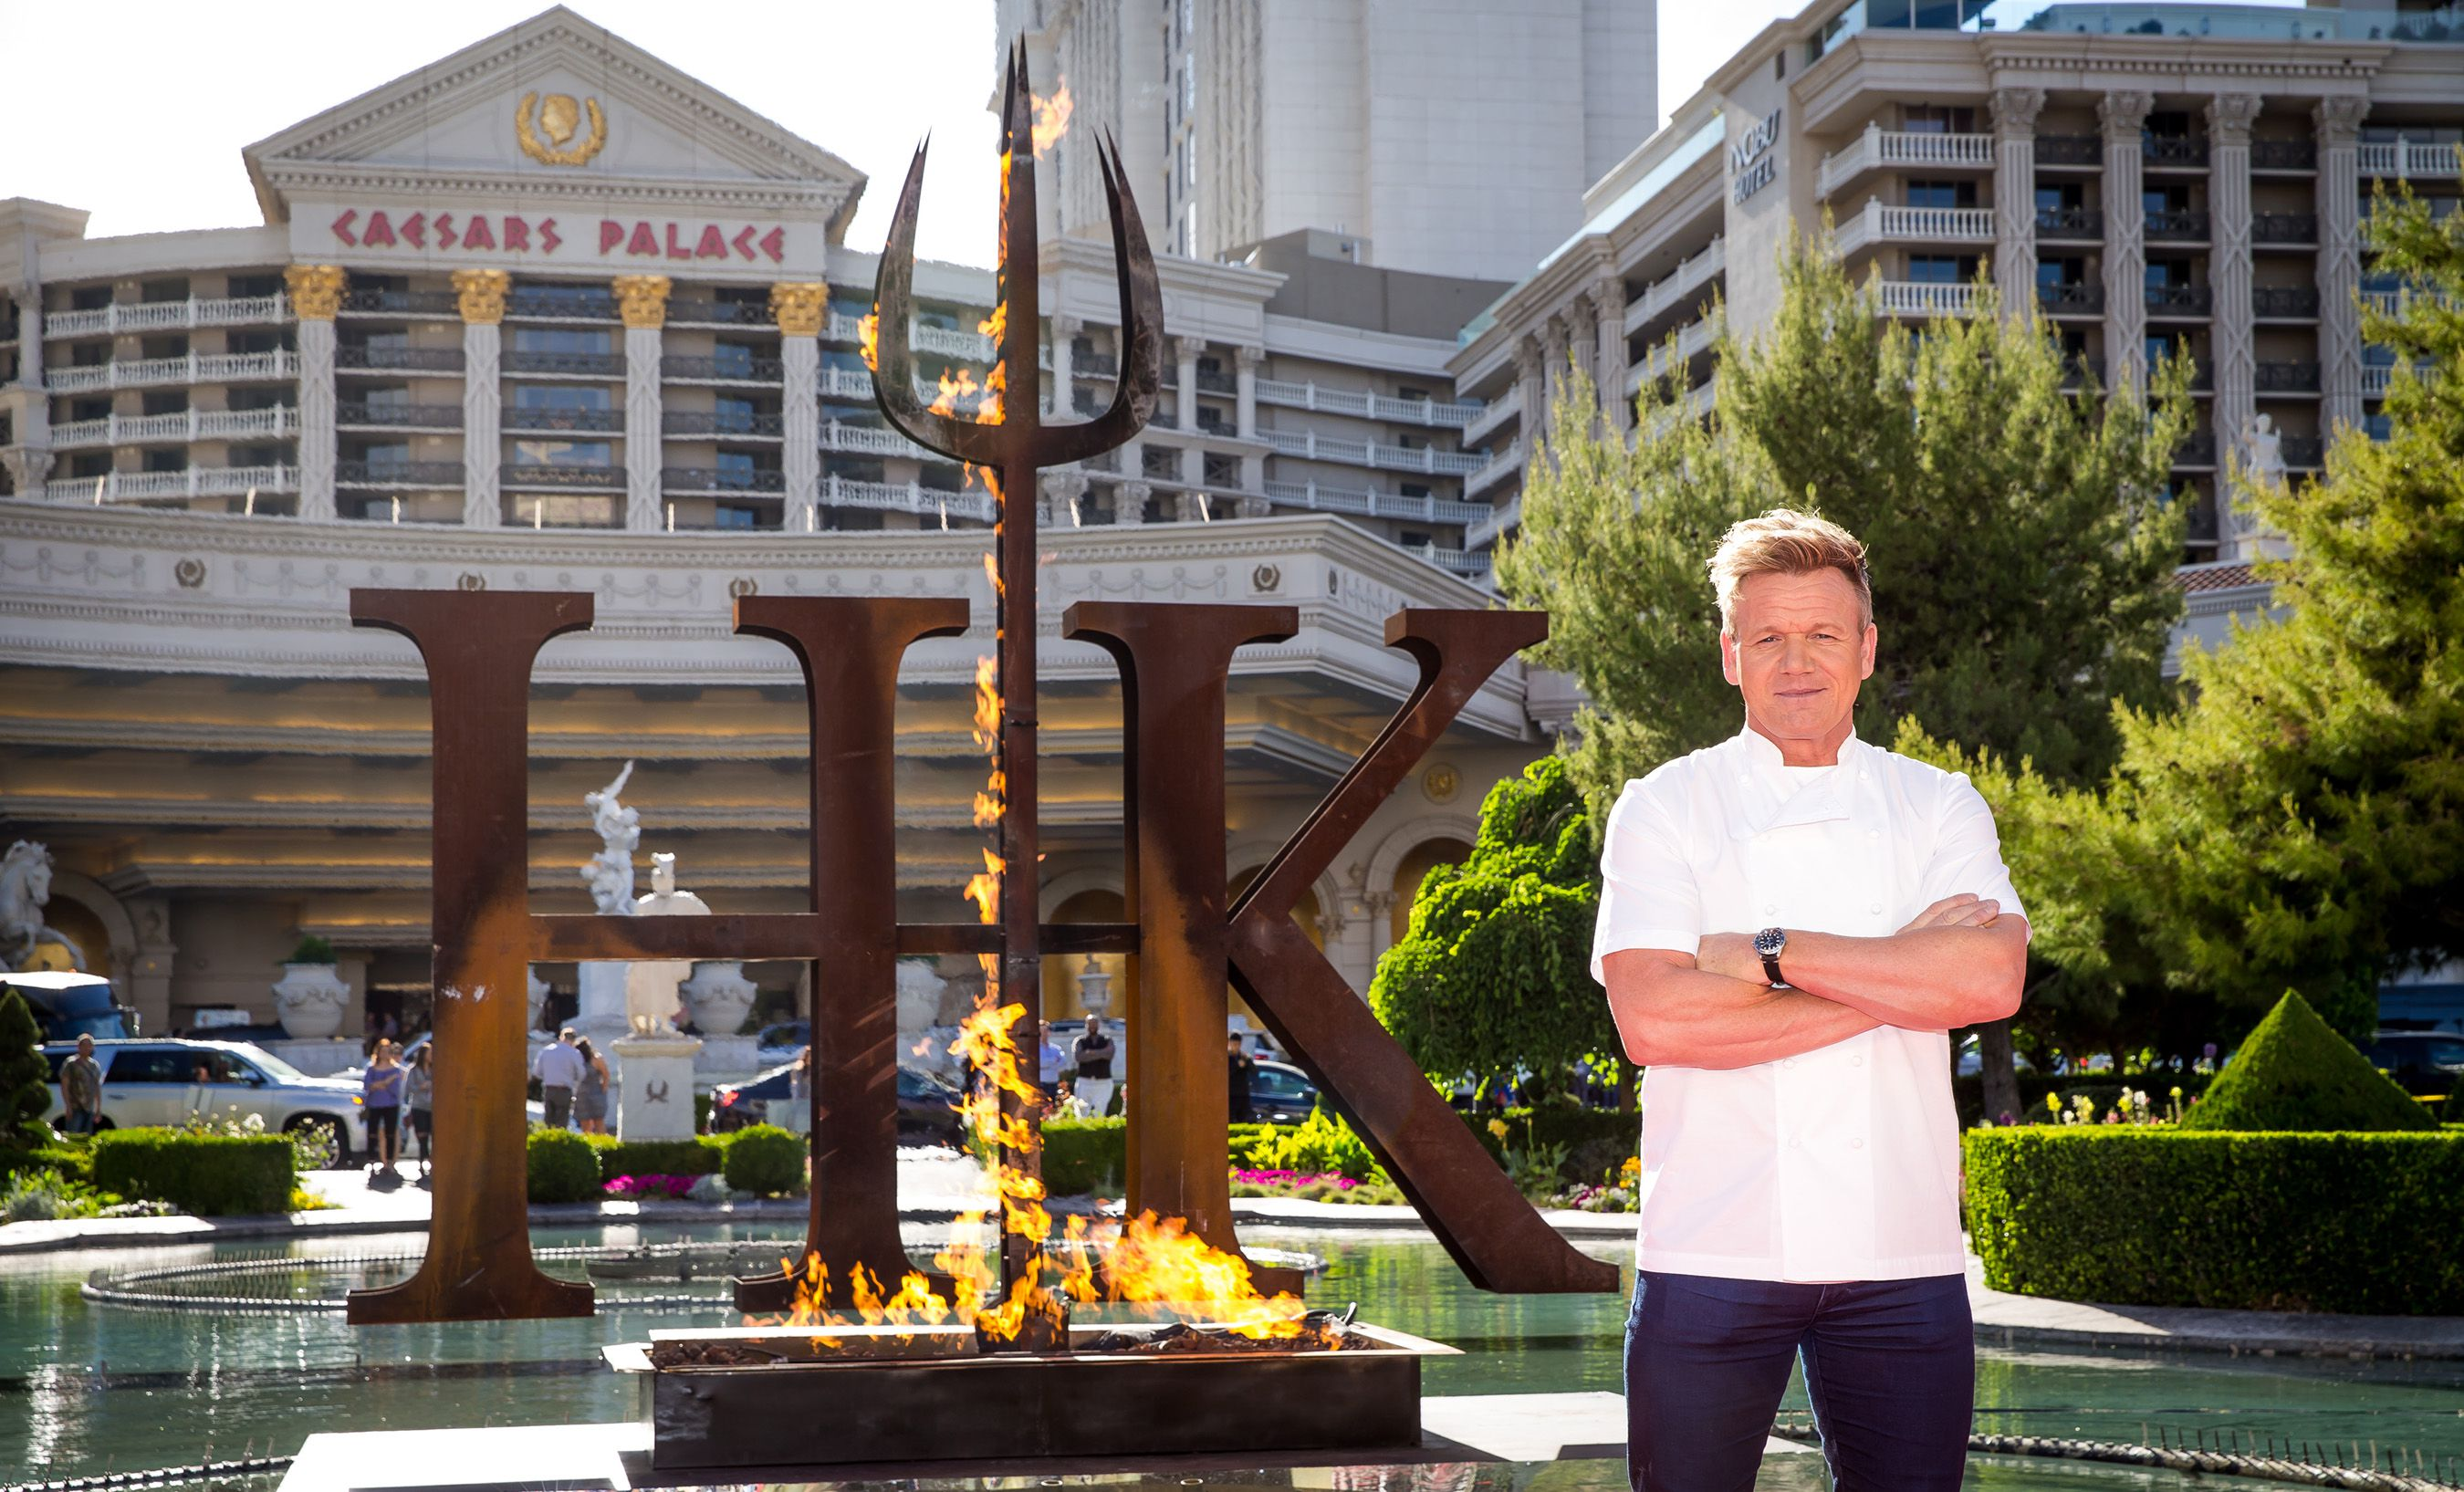 La Cocina De Gordon Ramsay 5 Chef Gordon Ramsay Restaurants In Las Vegas